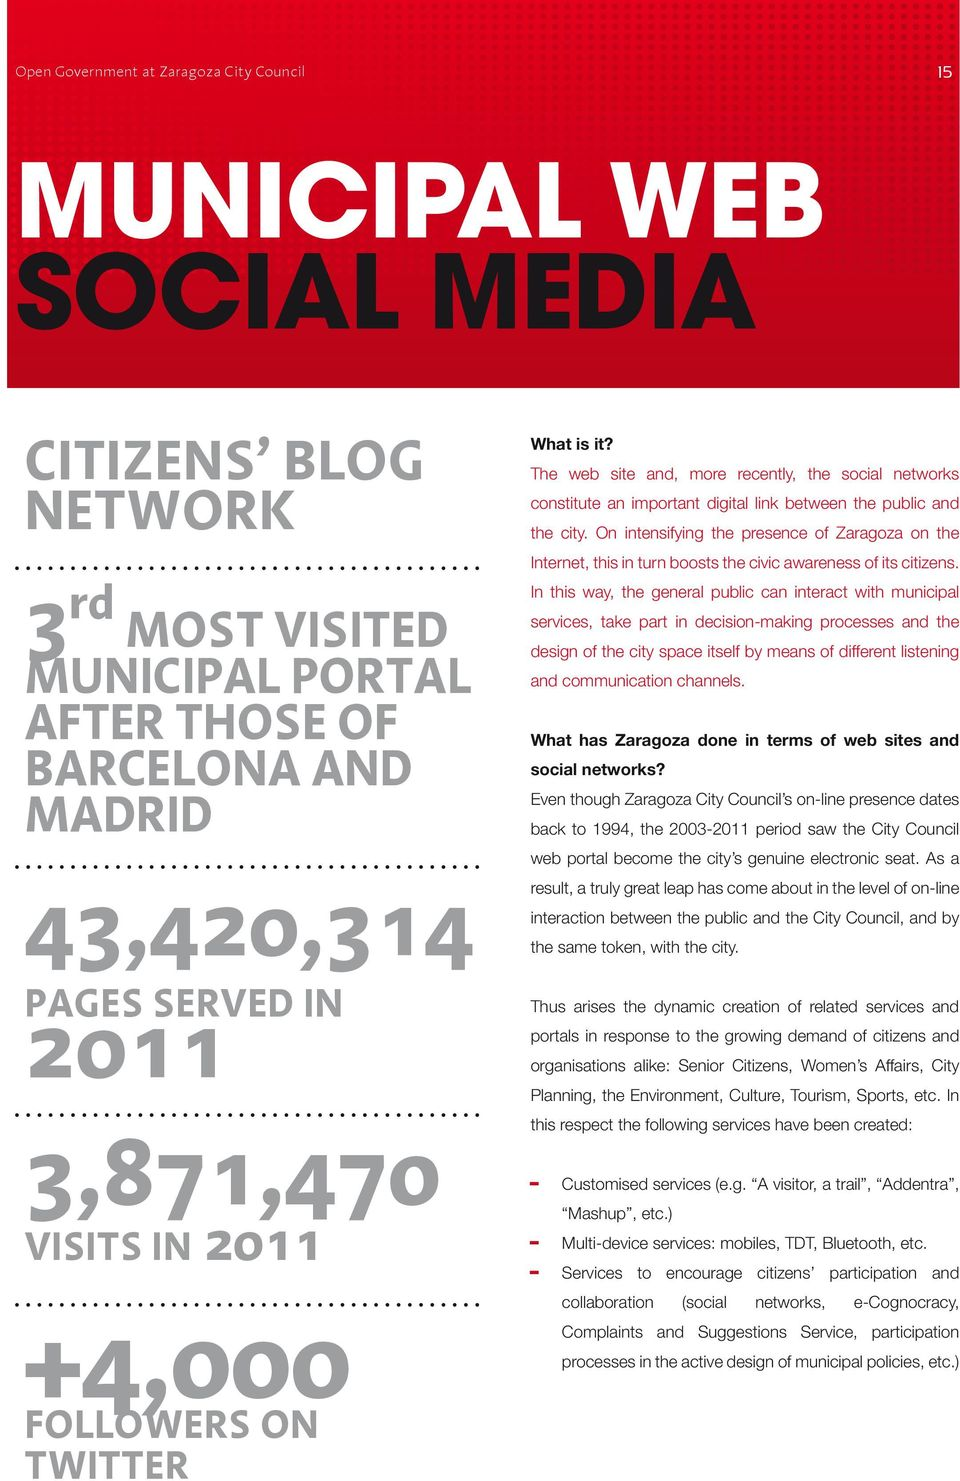 On intensifying the presence of Zaragoza on the Internet, this in turn boosts the civic awareness of its citizens.